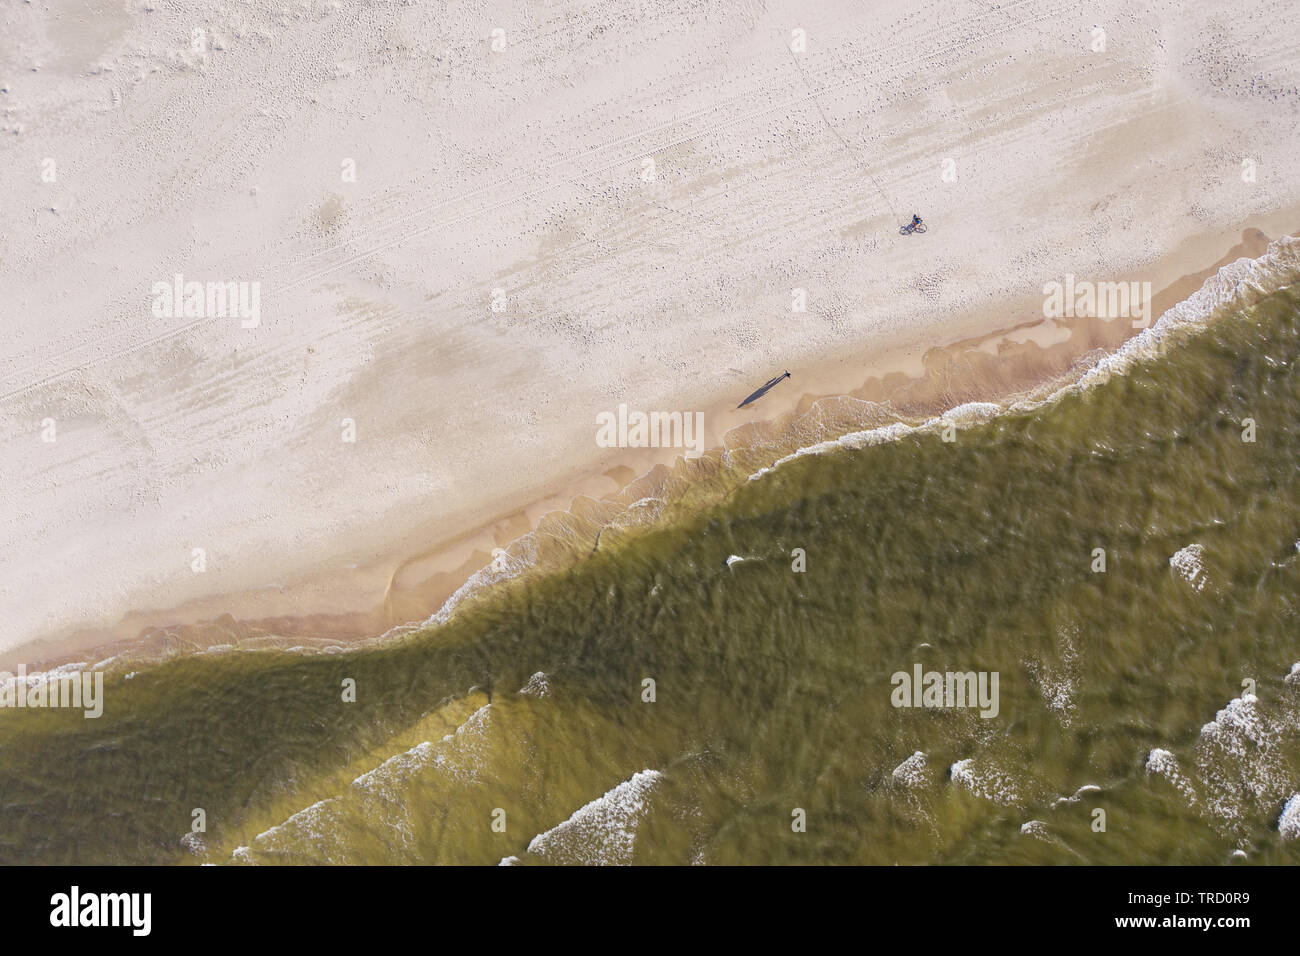 Aerial photography of the Baltic Sea beach, northern Poland/Germany. Stock Photo